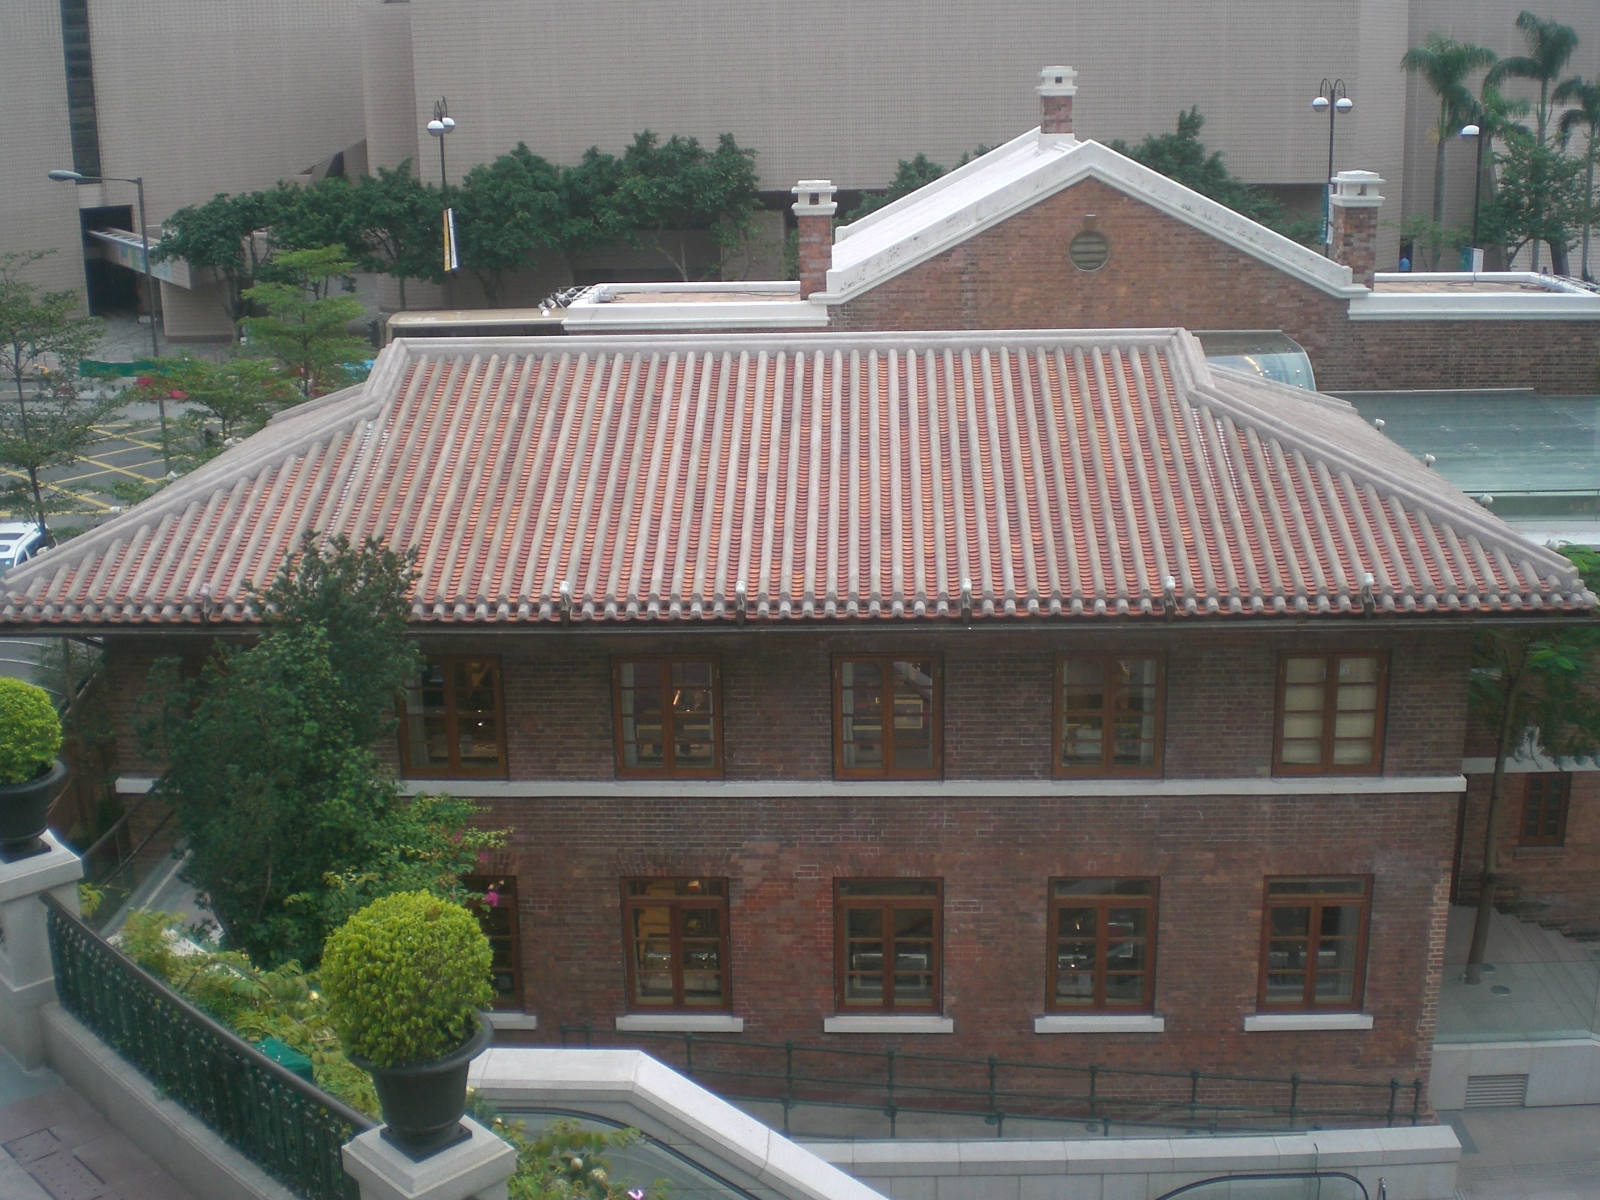 File:HK TST 1881 Mall Landscape Garden View Brick Buildings Roof.JPG